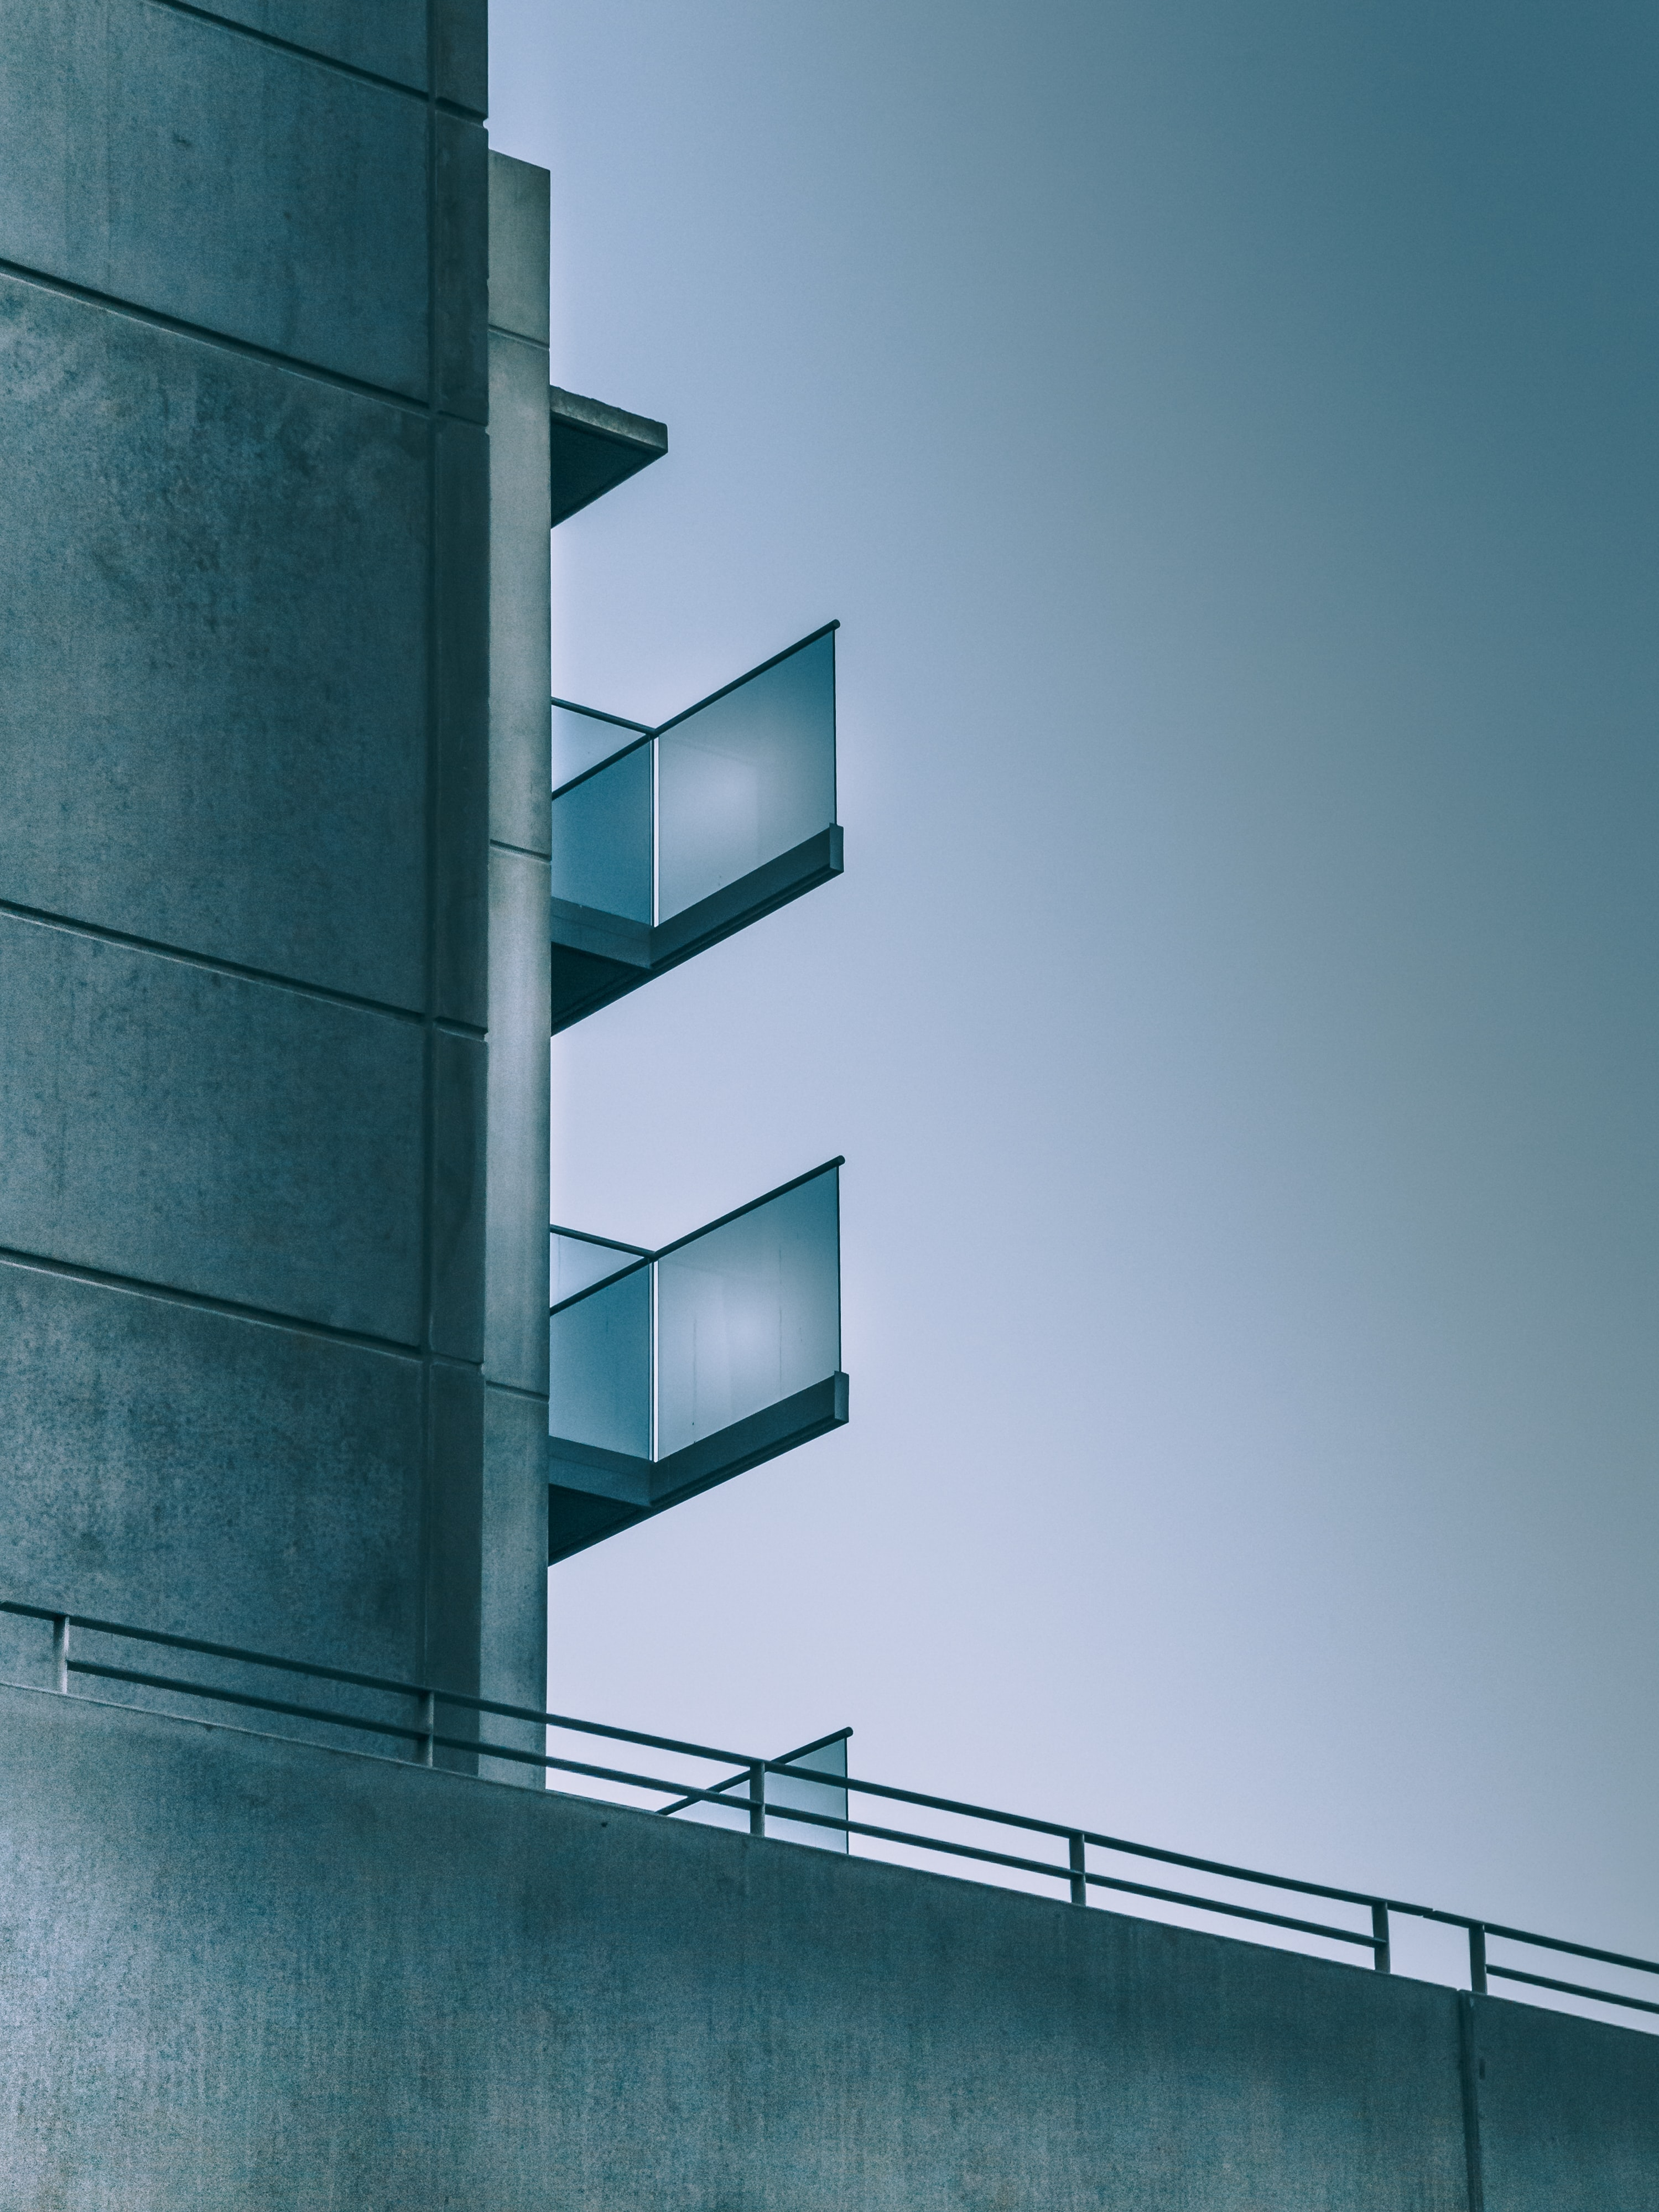 Balconies on a concrete residential building seen from the side